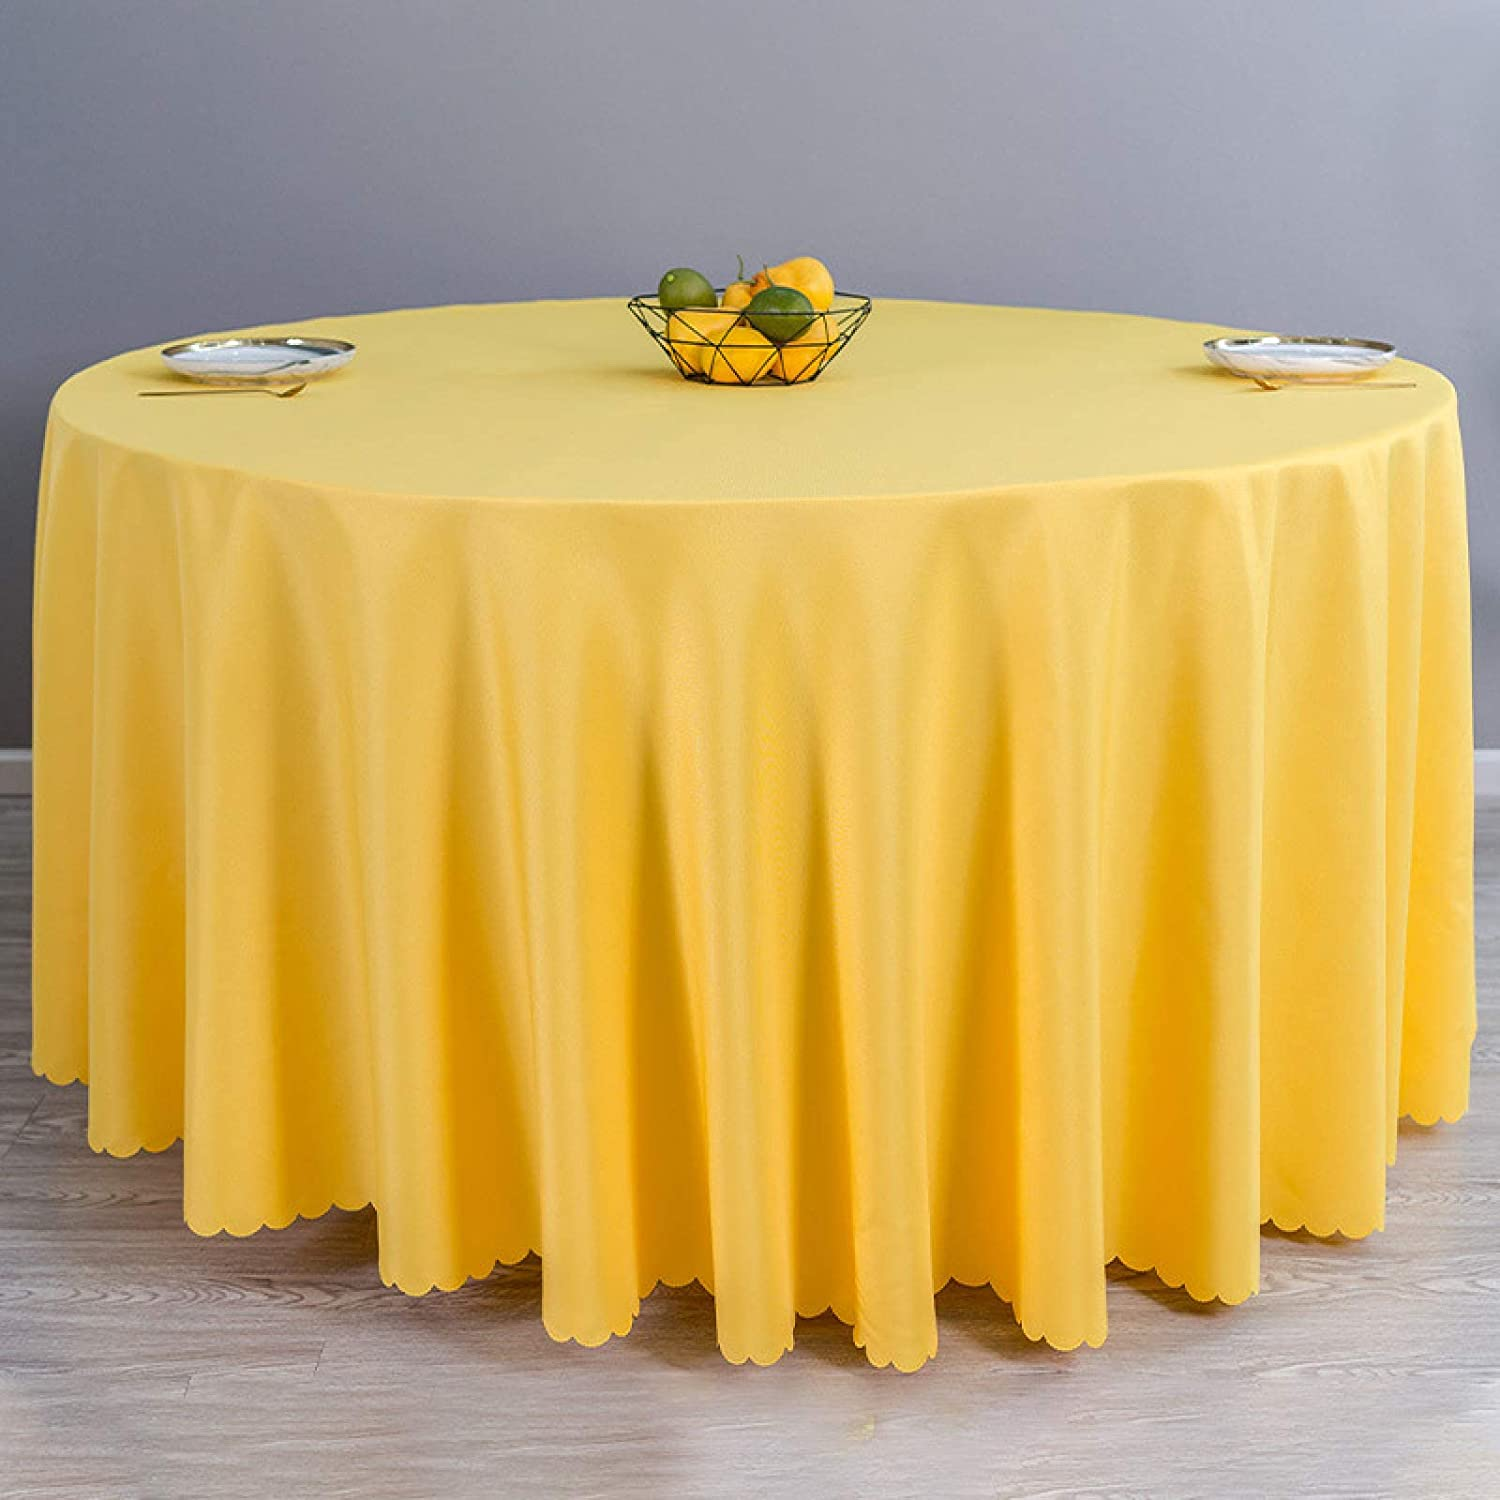 Max 61% OFF Tablecloths Tablecloth Cotton Linen Wrinkle-Free New Orleans Mall Em Washable